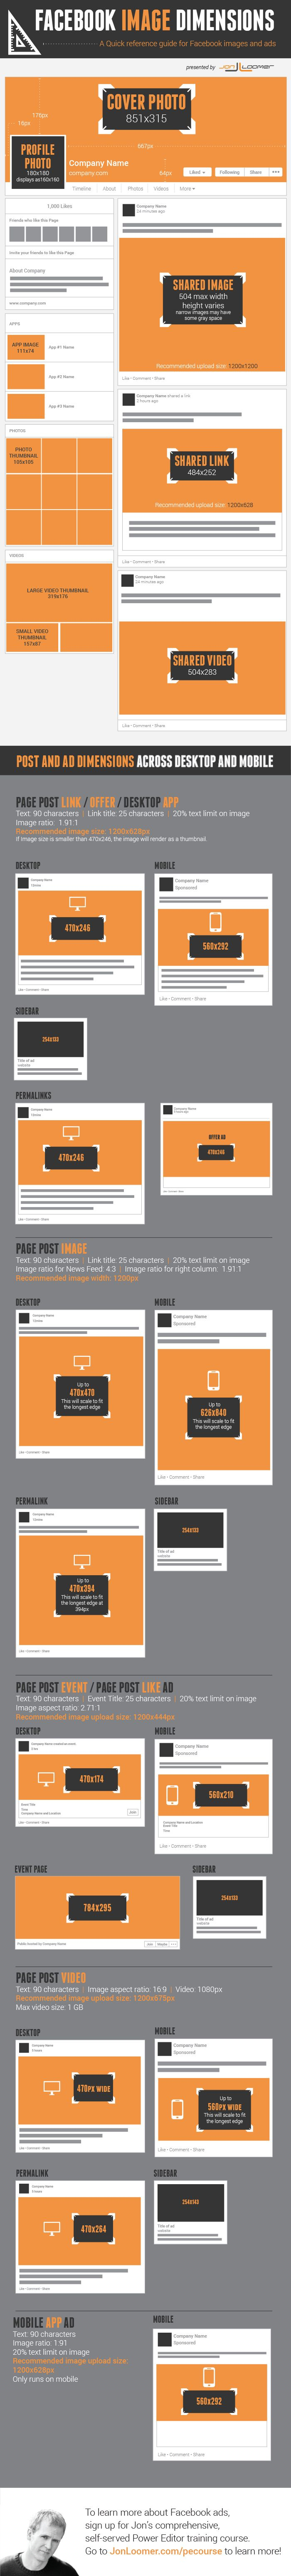 All #Facebook Image #Dimensions: Timeline, Posts, Ads [ #Infographic ] 9/16/14